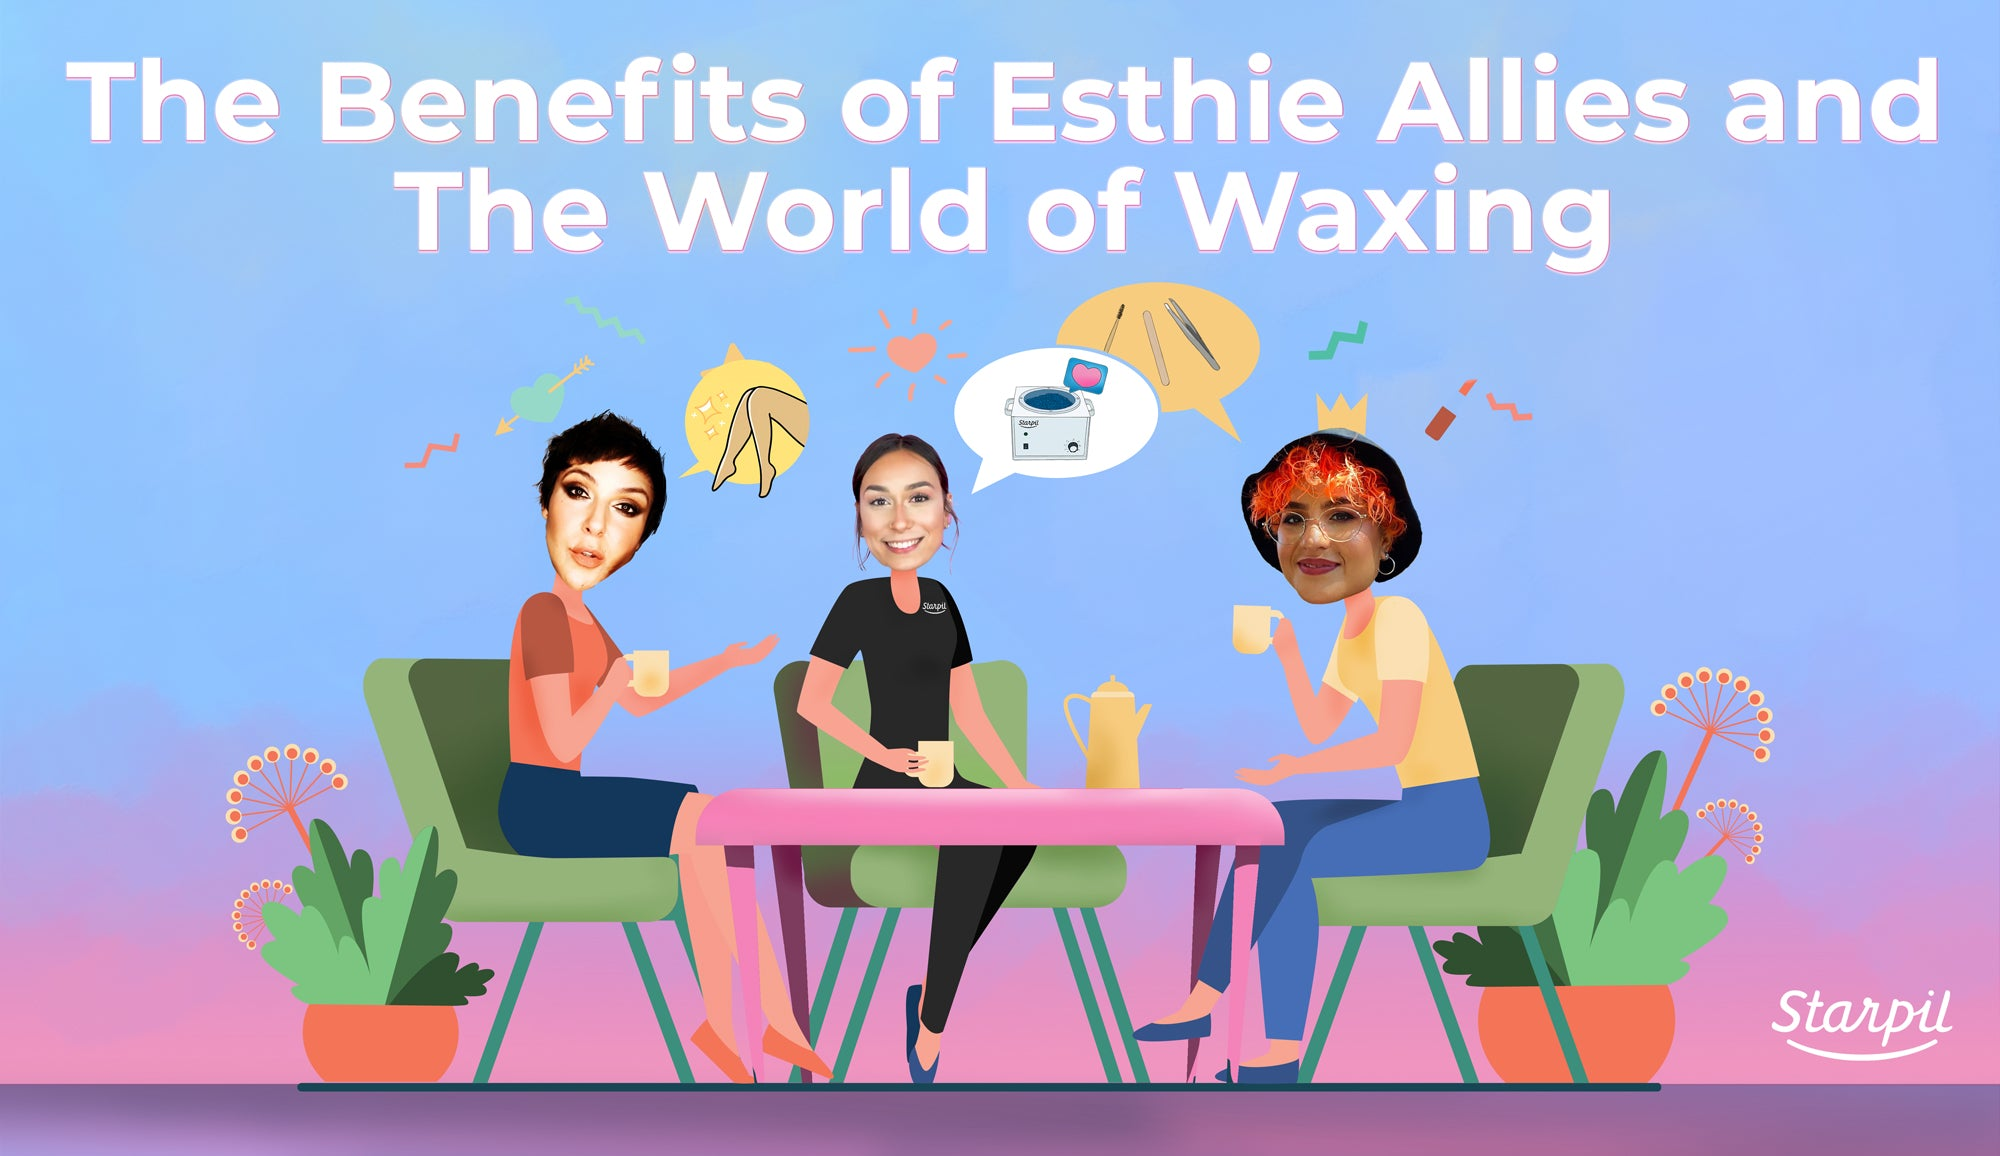 The Benefits of Esthie Allies and The World of Waxing